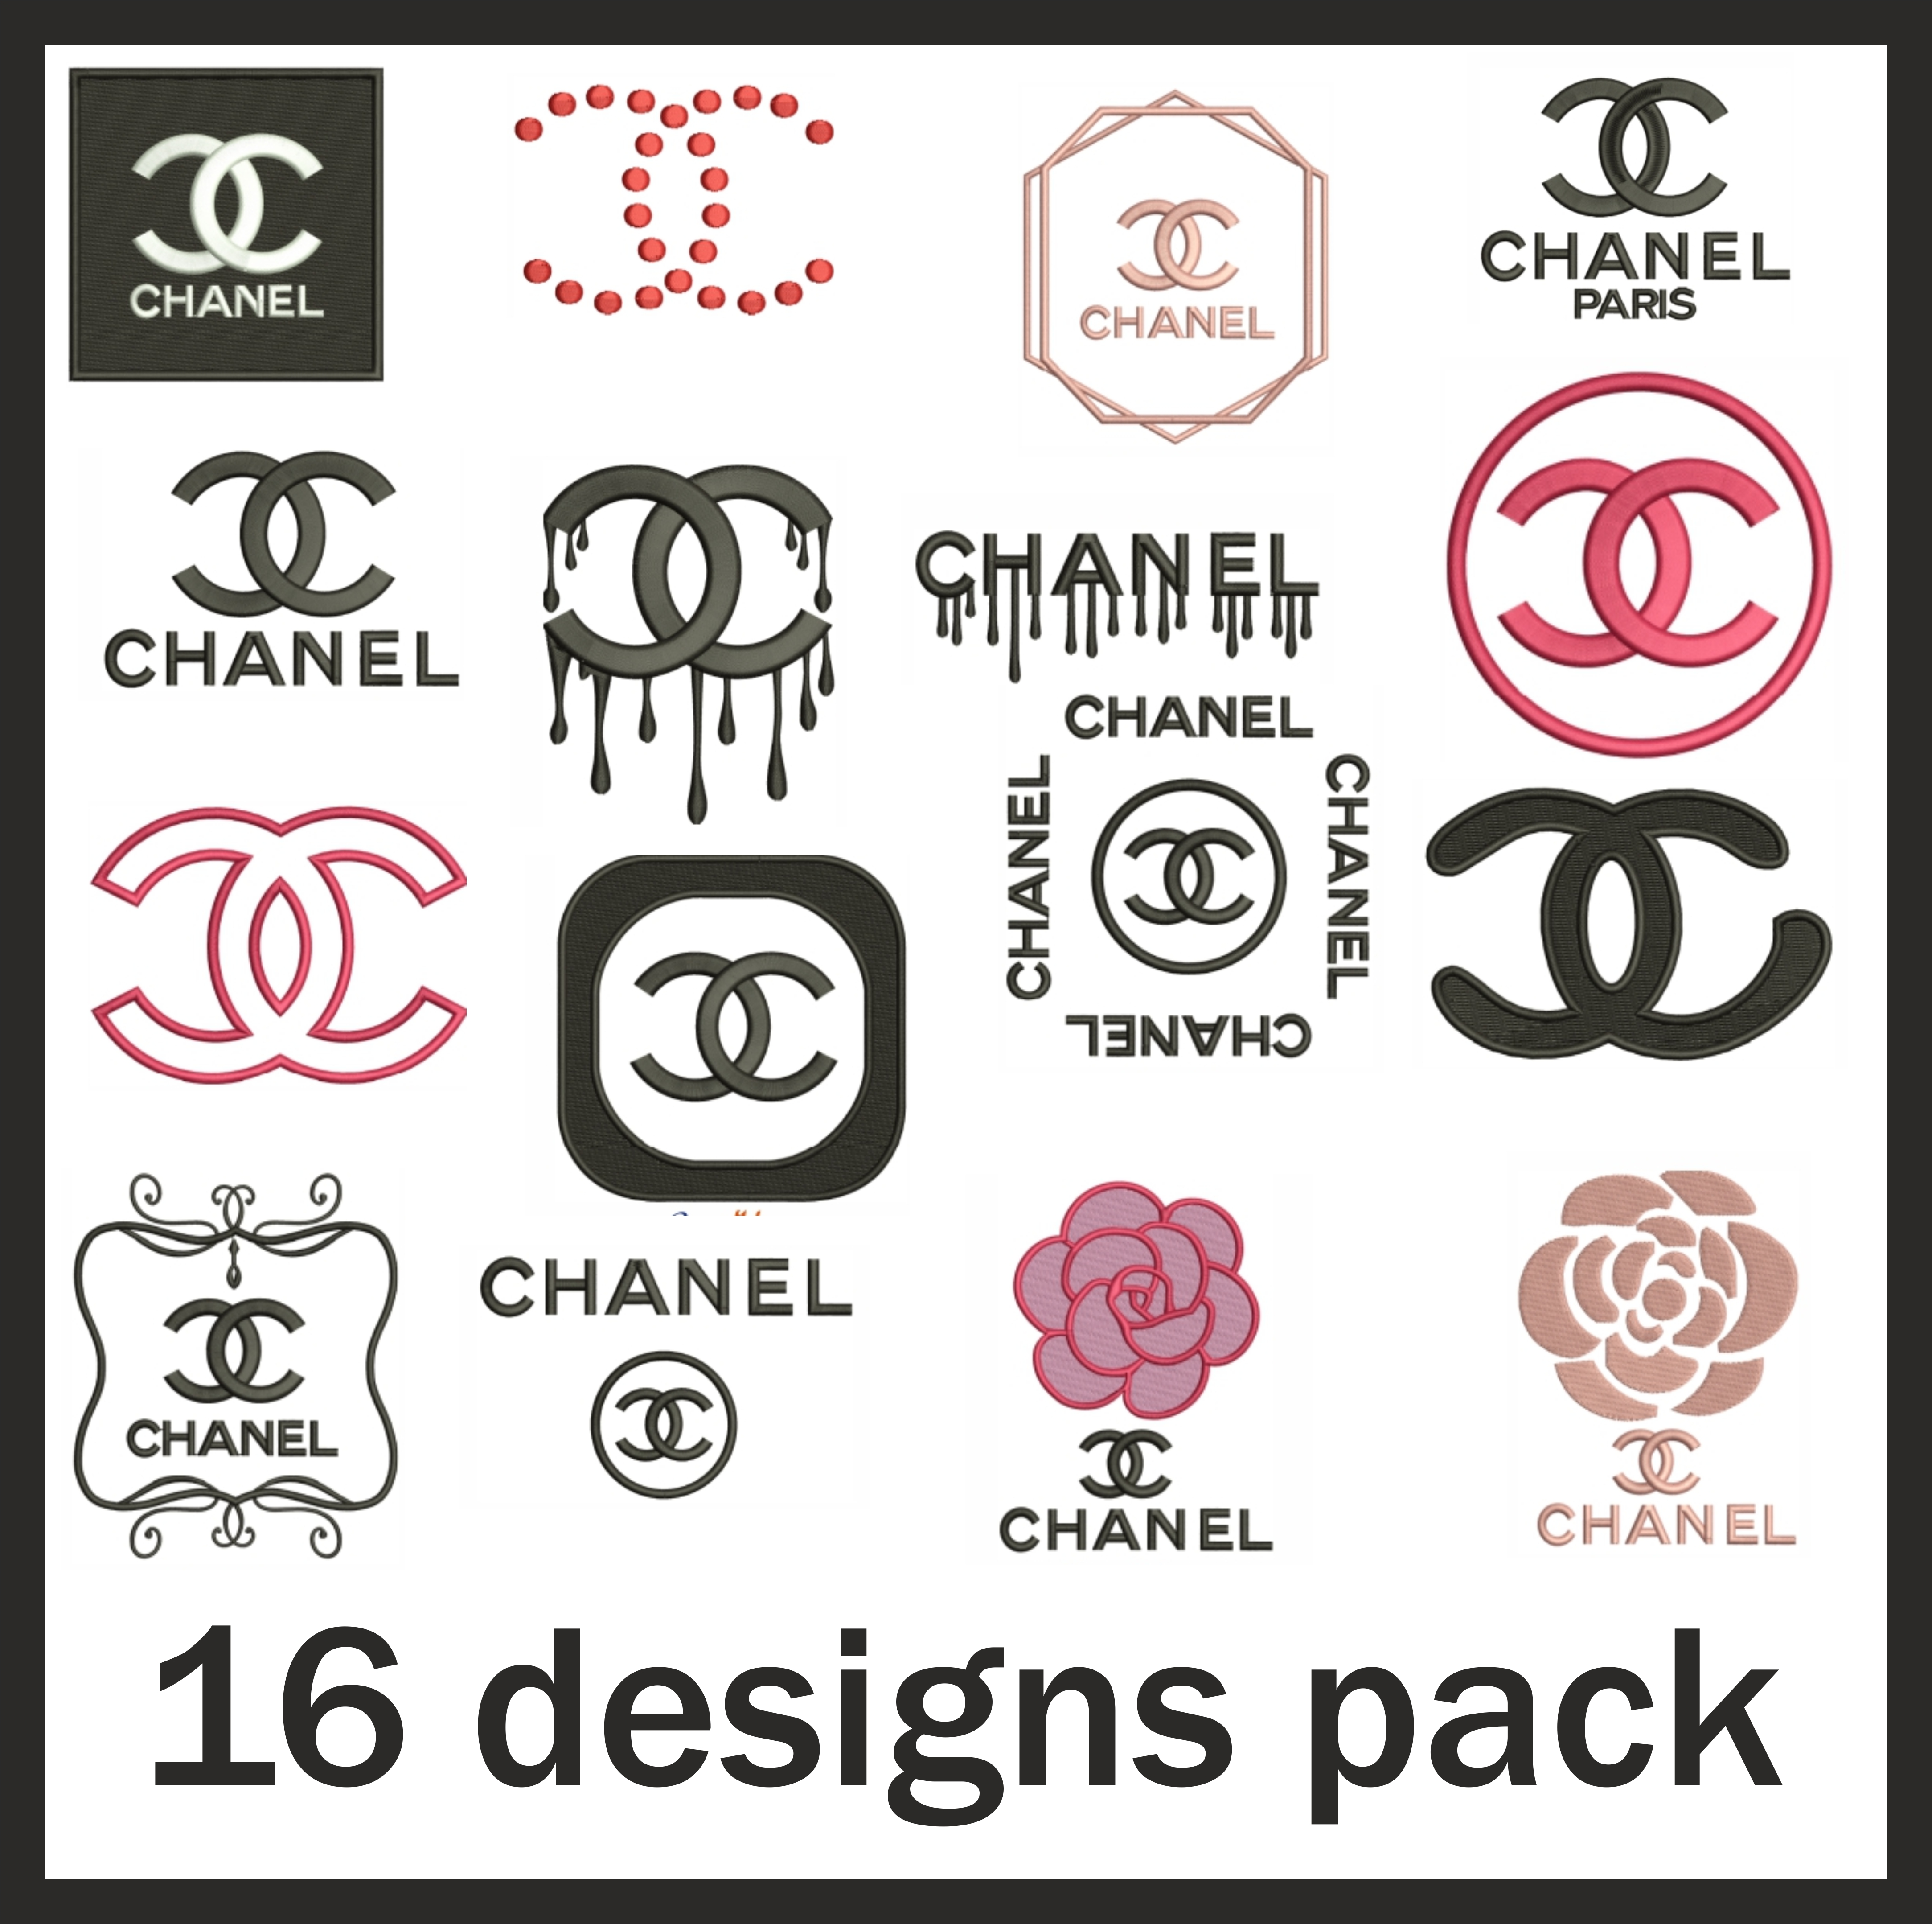 Chanel Logo Design Pack